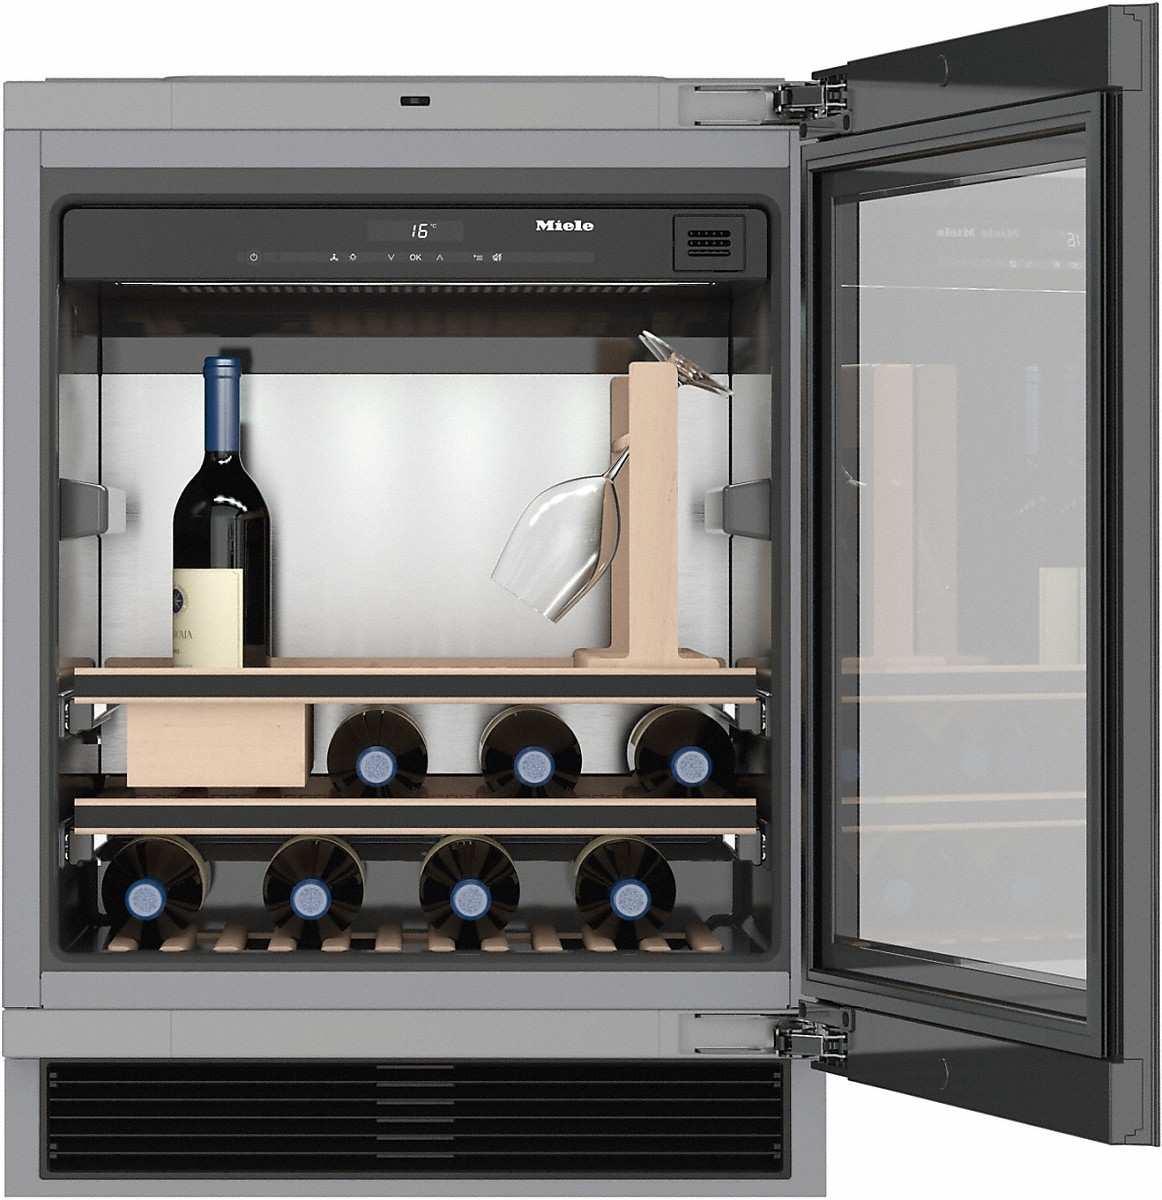 for perfect enjoyment and timeless design with its Push2open and SommelierSet. & Miele KWT 6312 UGS Built-under wine storage unit